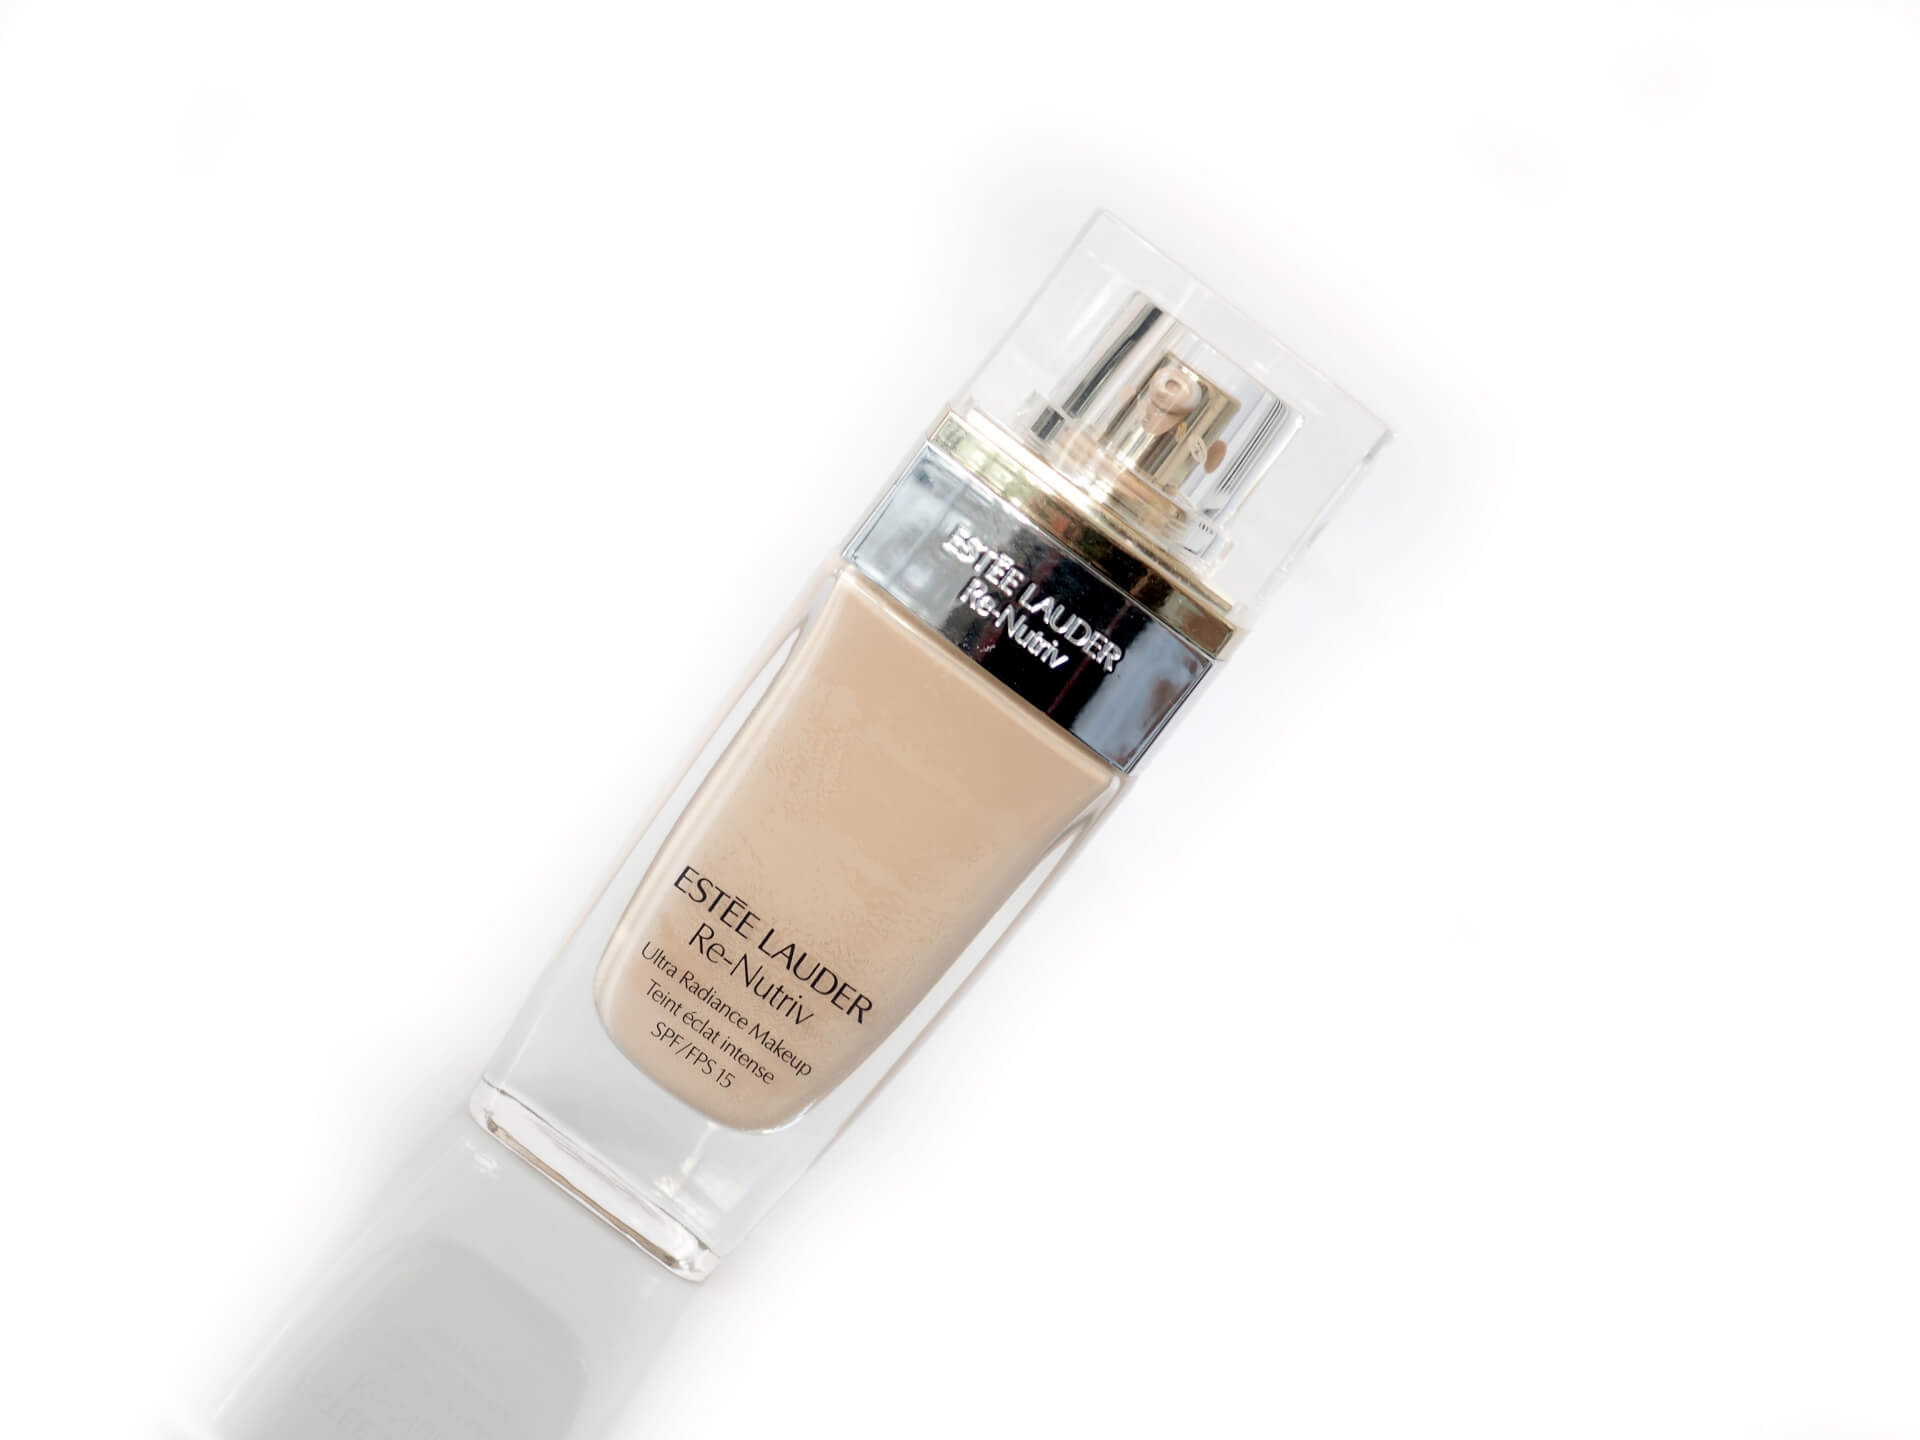 Estee Lauder Re-Nutrive Ultimate Radiance